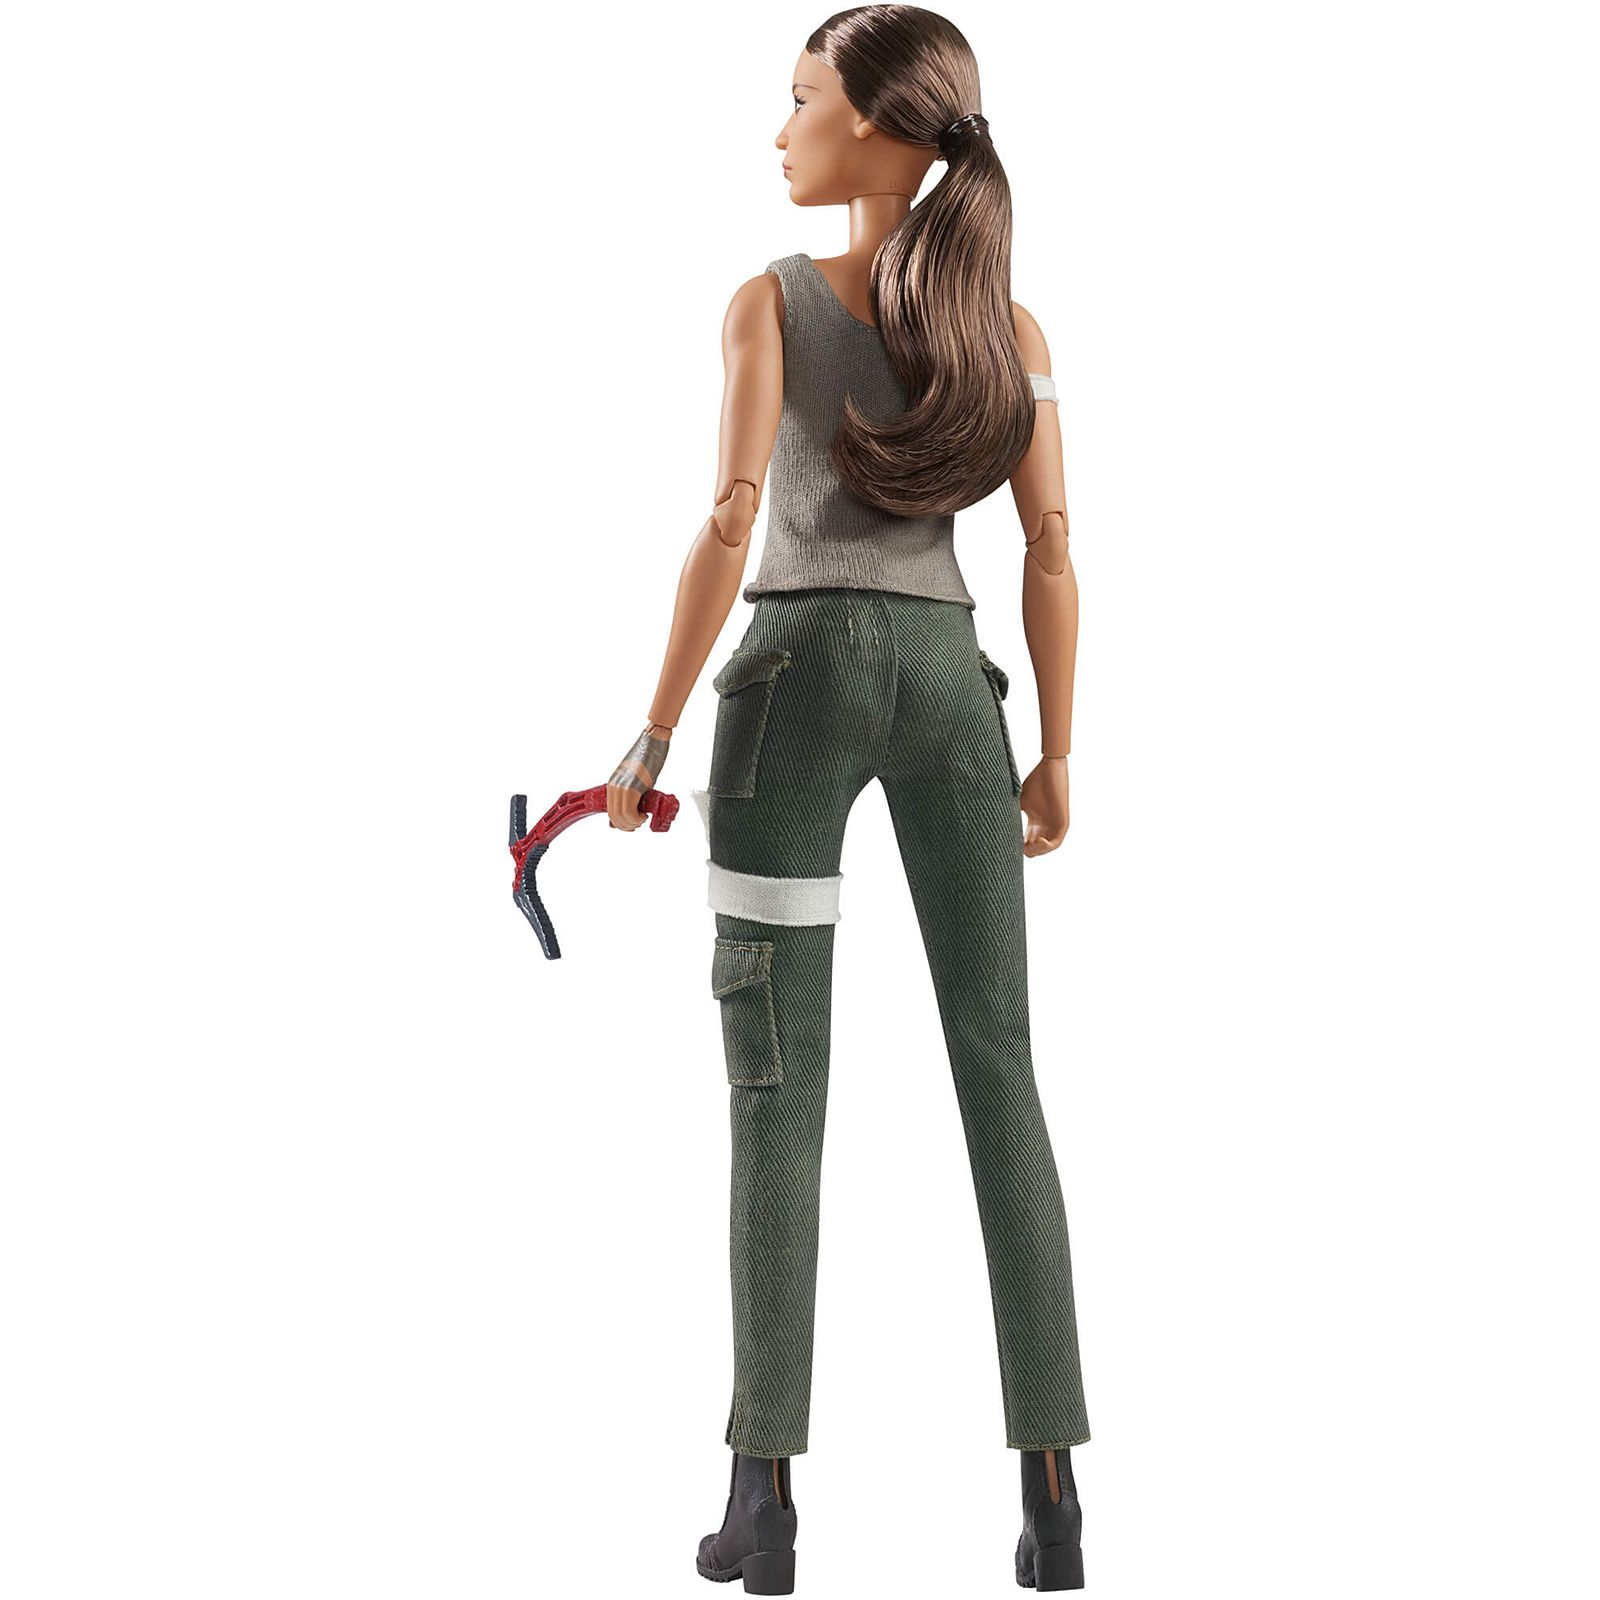 Barbie Lara Croft